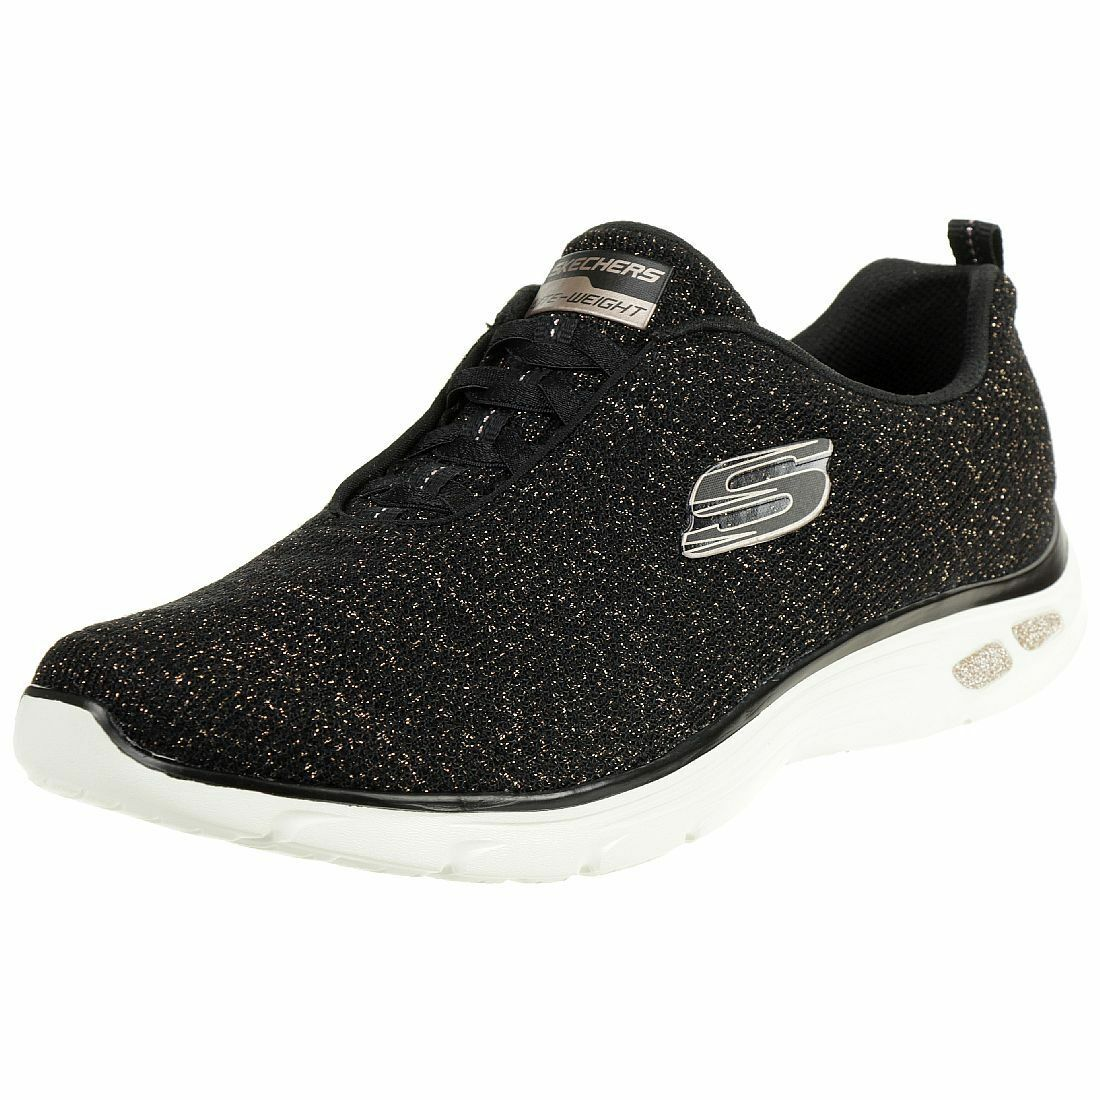 Skechers Relaxed Fit Empire D'Lux - - D'Lux Burn Bright Mujer Sneakers Air Cooled c80b11